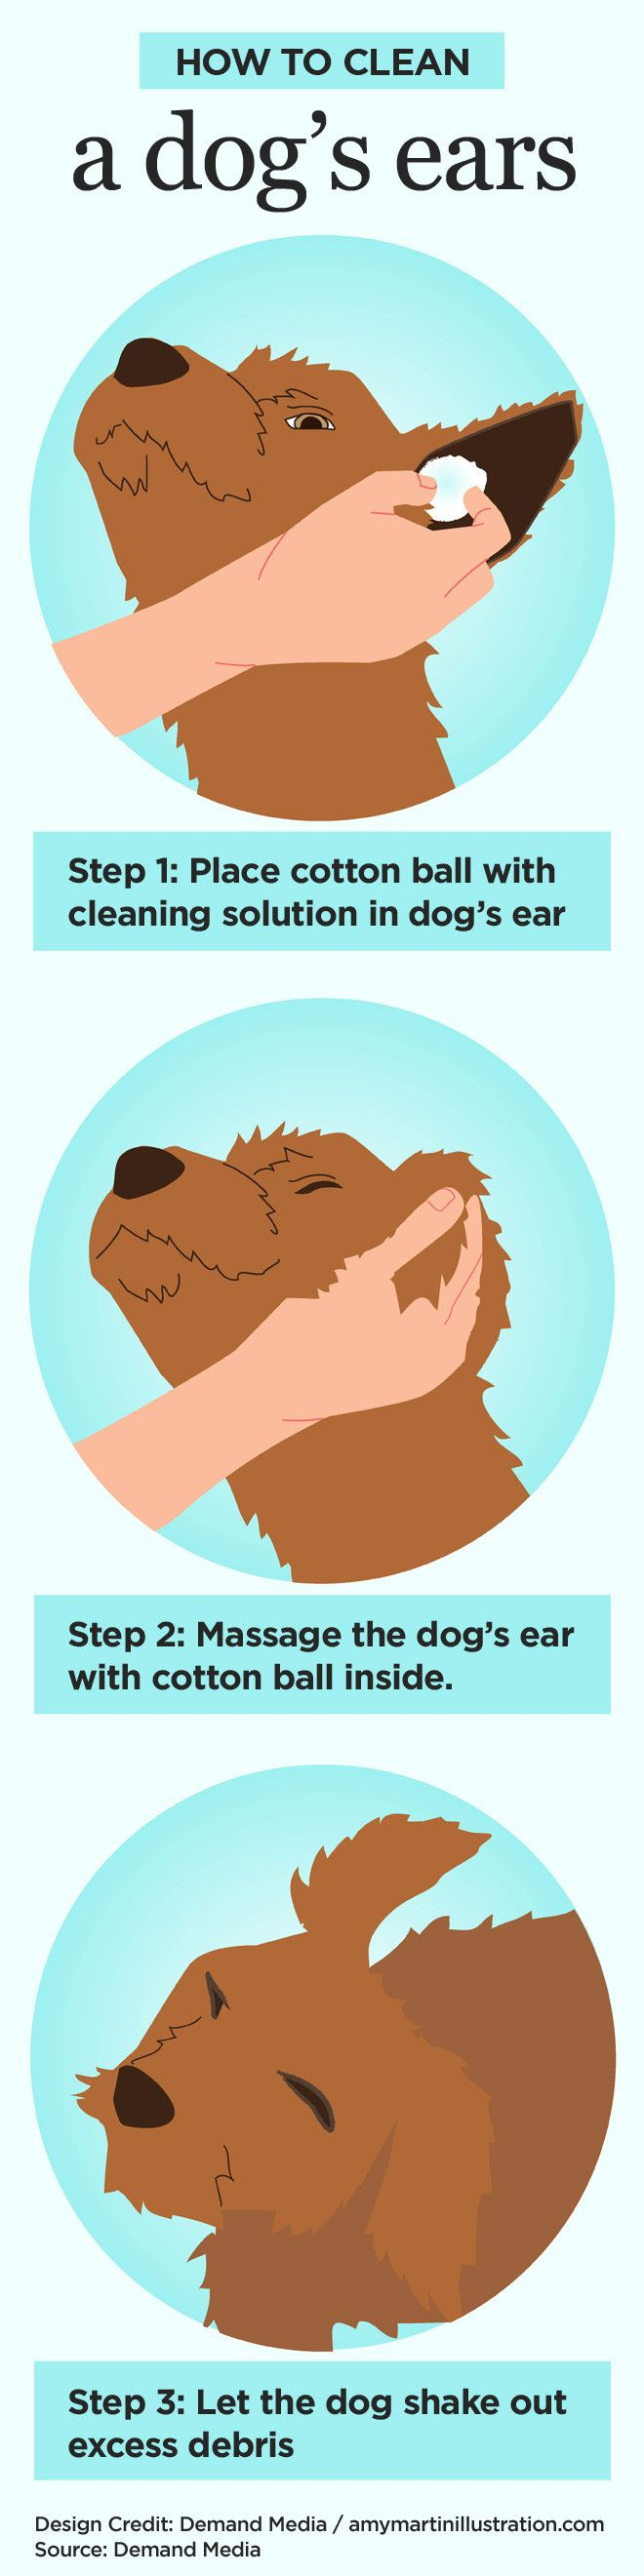 How to Clean a Dog's Ears | eHow.com